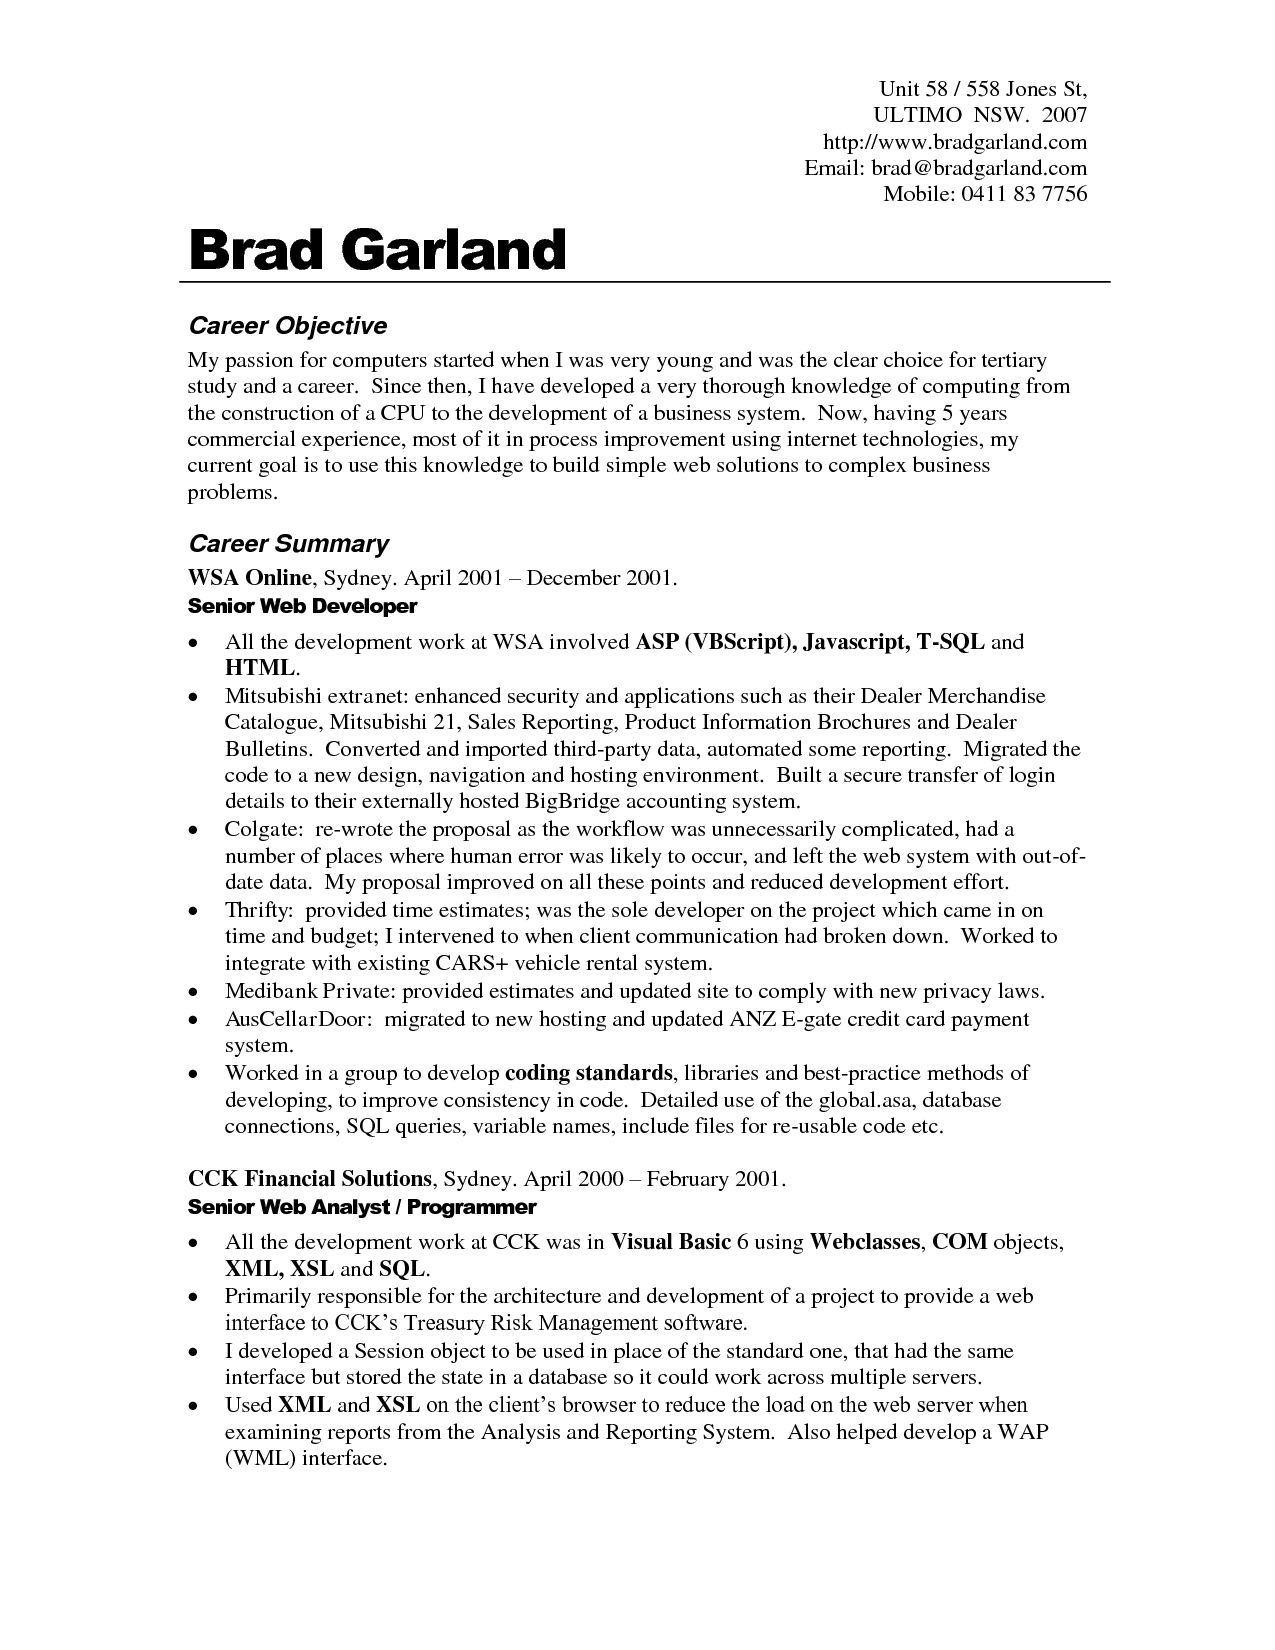 Attorney Resume Template Endearing Resume Examples Job Objective  Sample Resume Entry Level And .